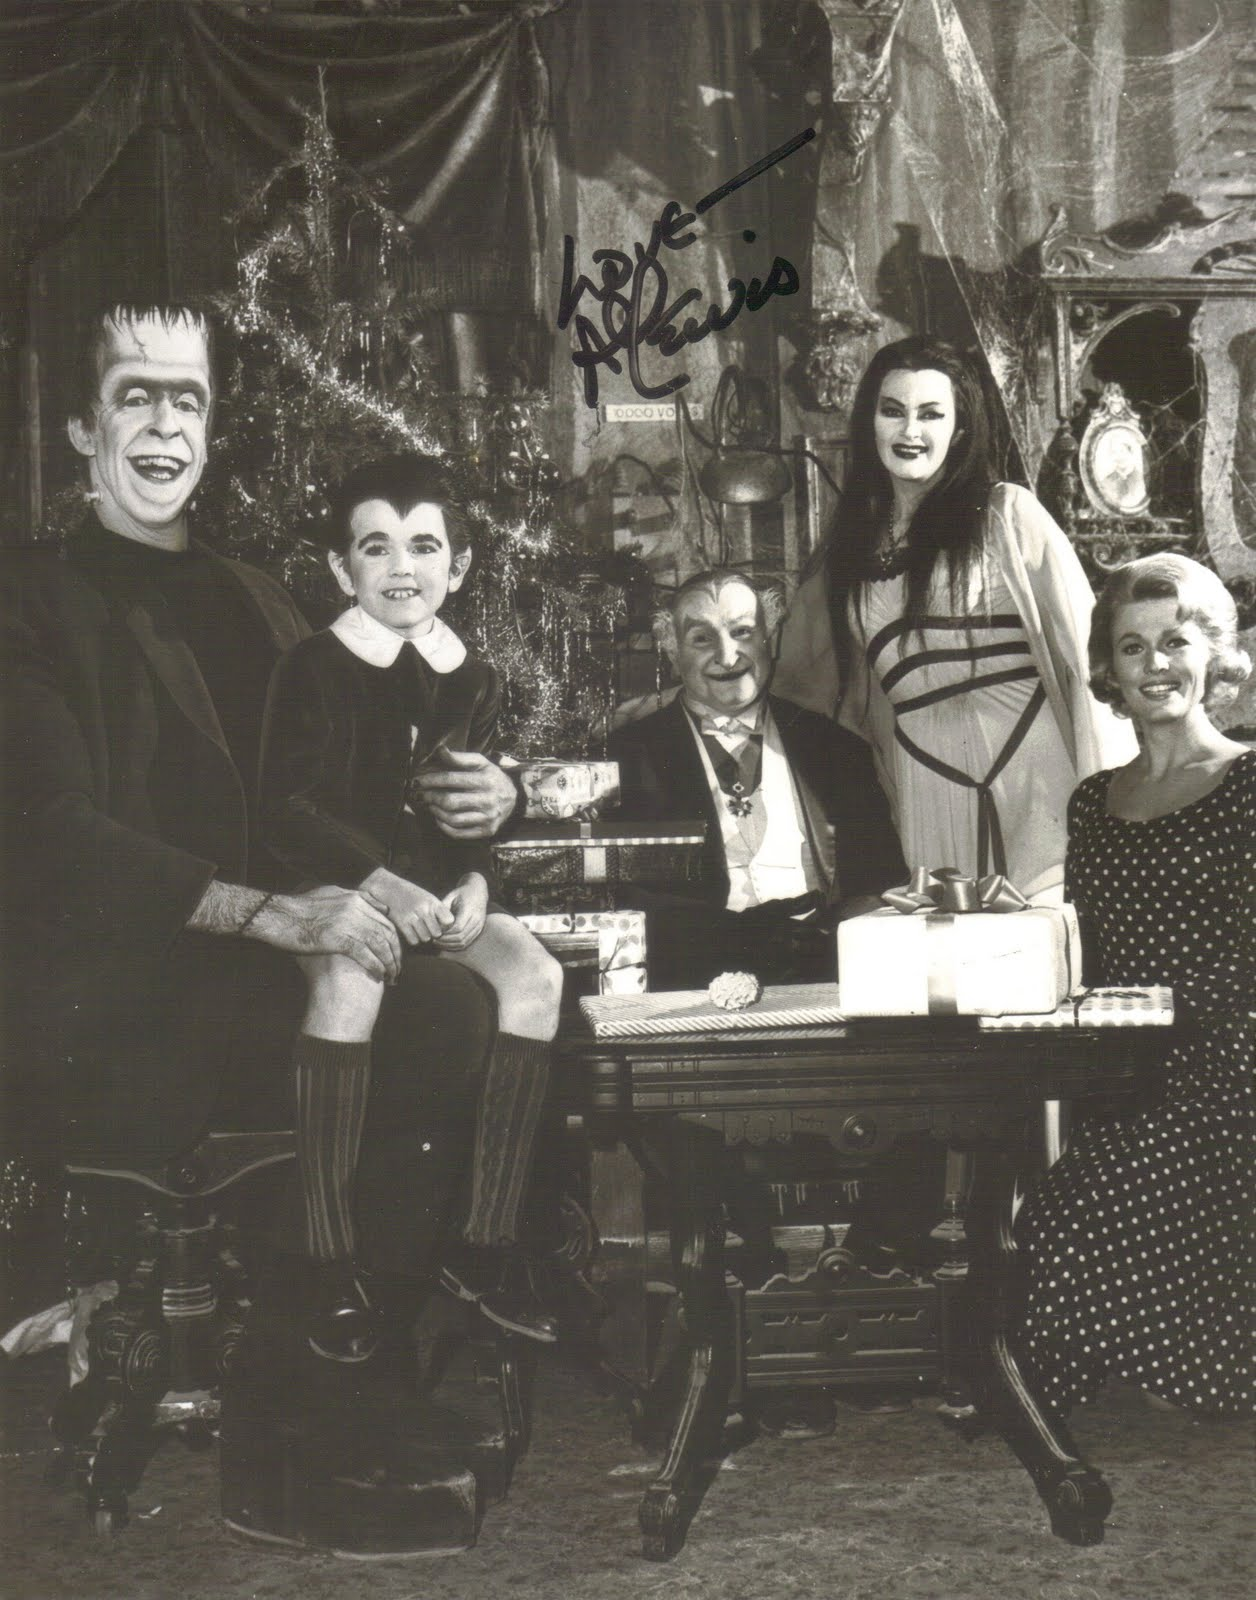 MERRY CHRISTMAS from THE MUNSTERS! Reblogged 1 year ago from trixietreats